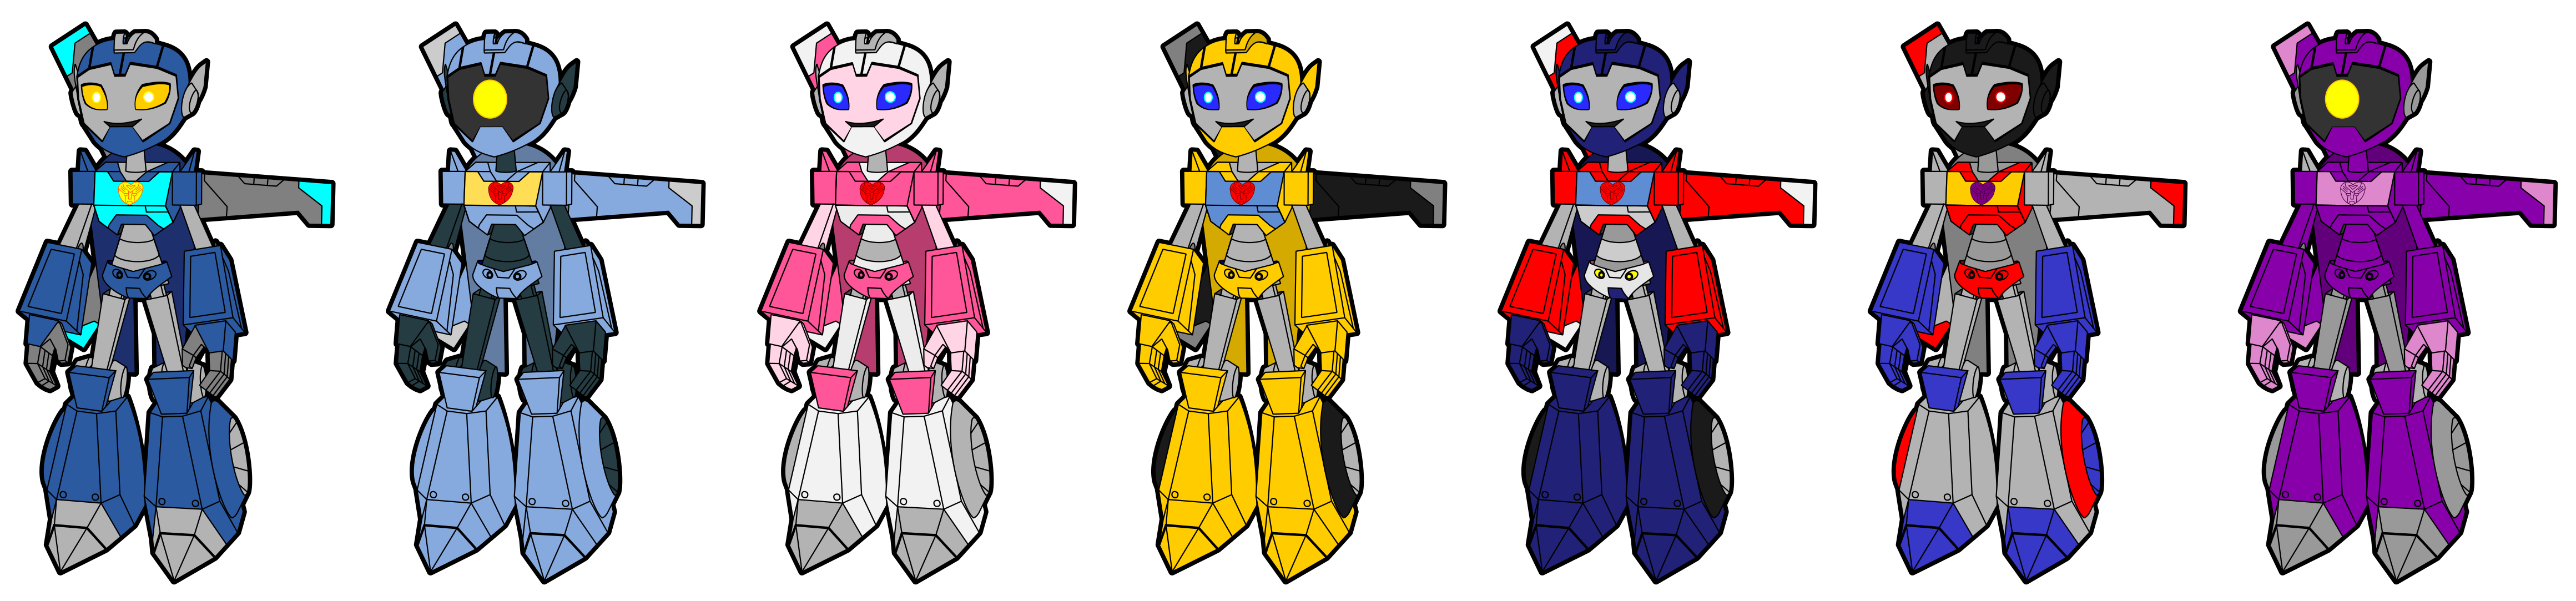 Transformers Rescue Bots Academy Whirl Vector Illustration And